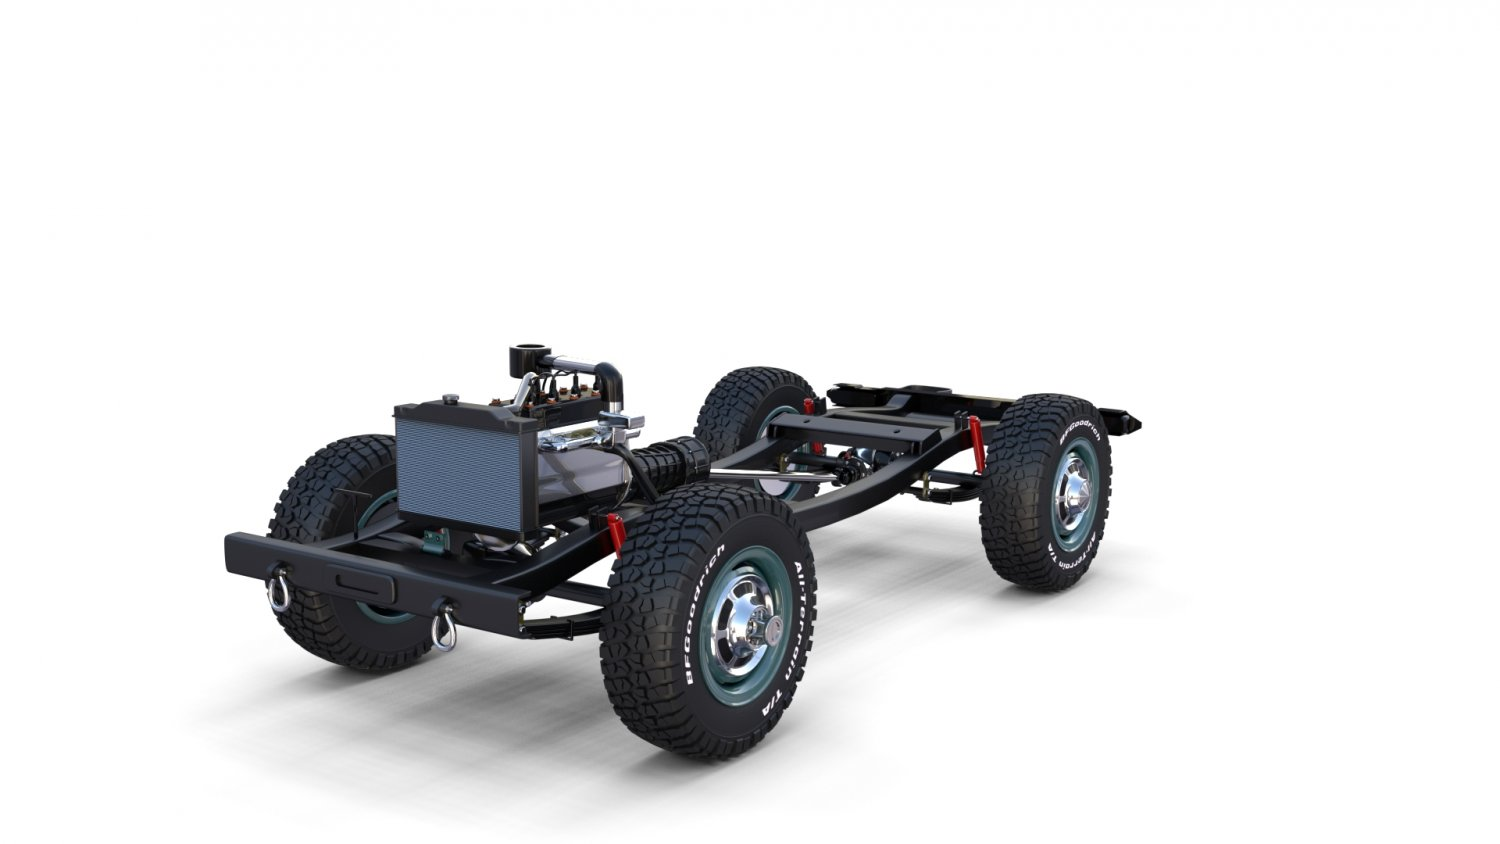 Full Offroad Vehicle Chassis 3D Model in Classic Cars 3DExport